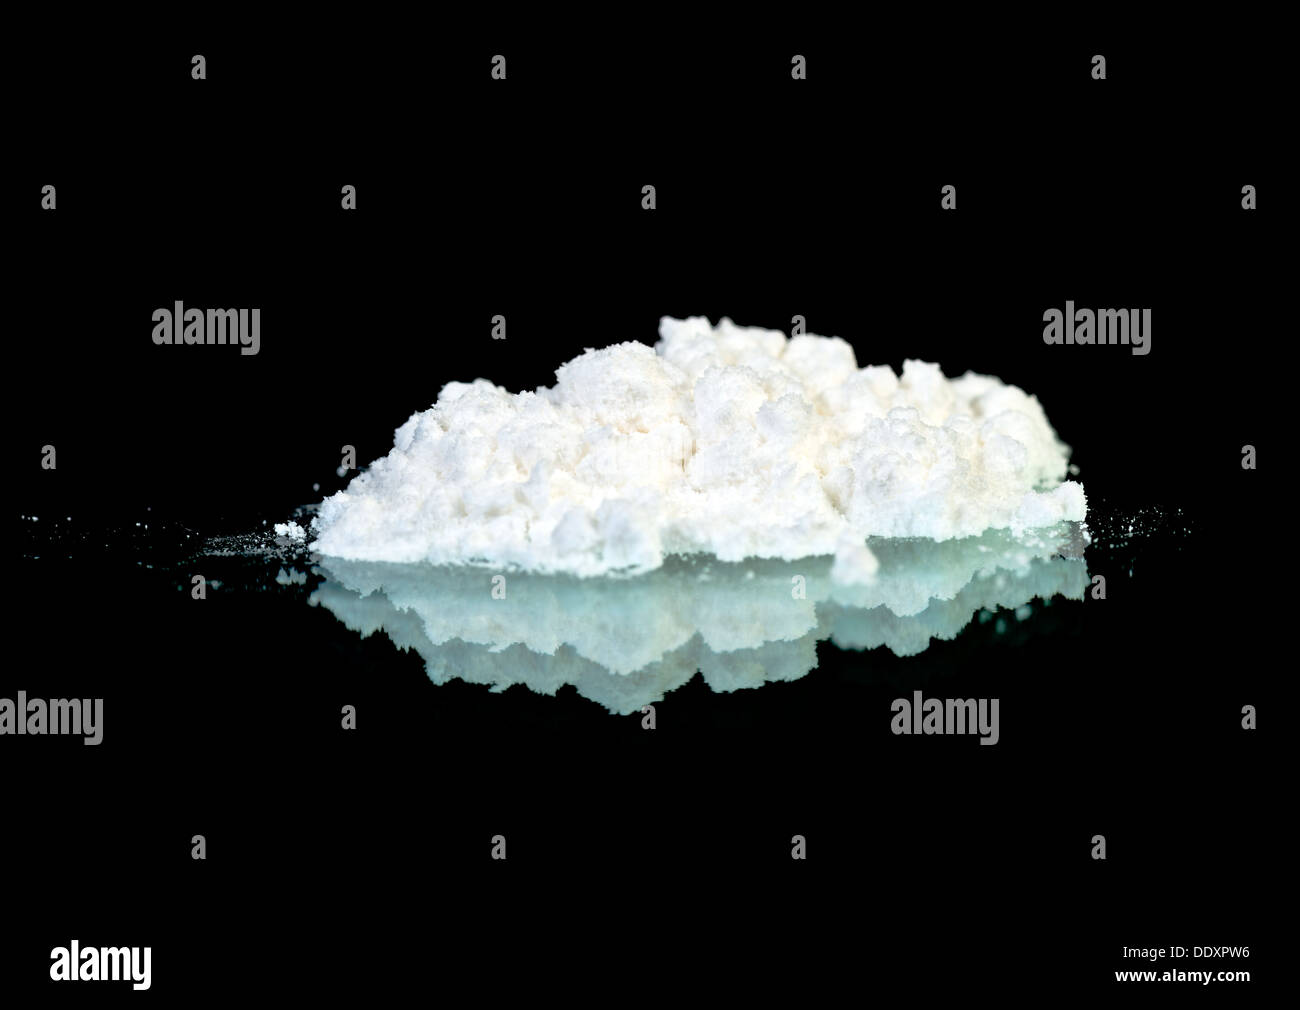 White powder on the mirror - Stock Image